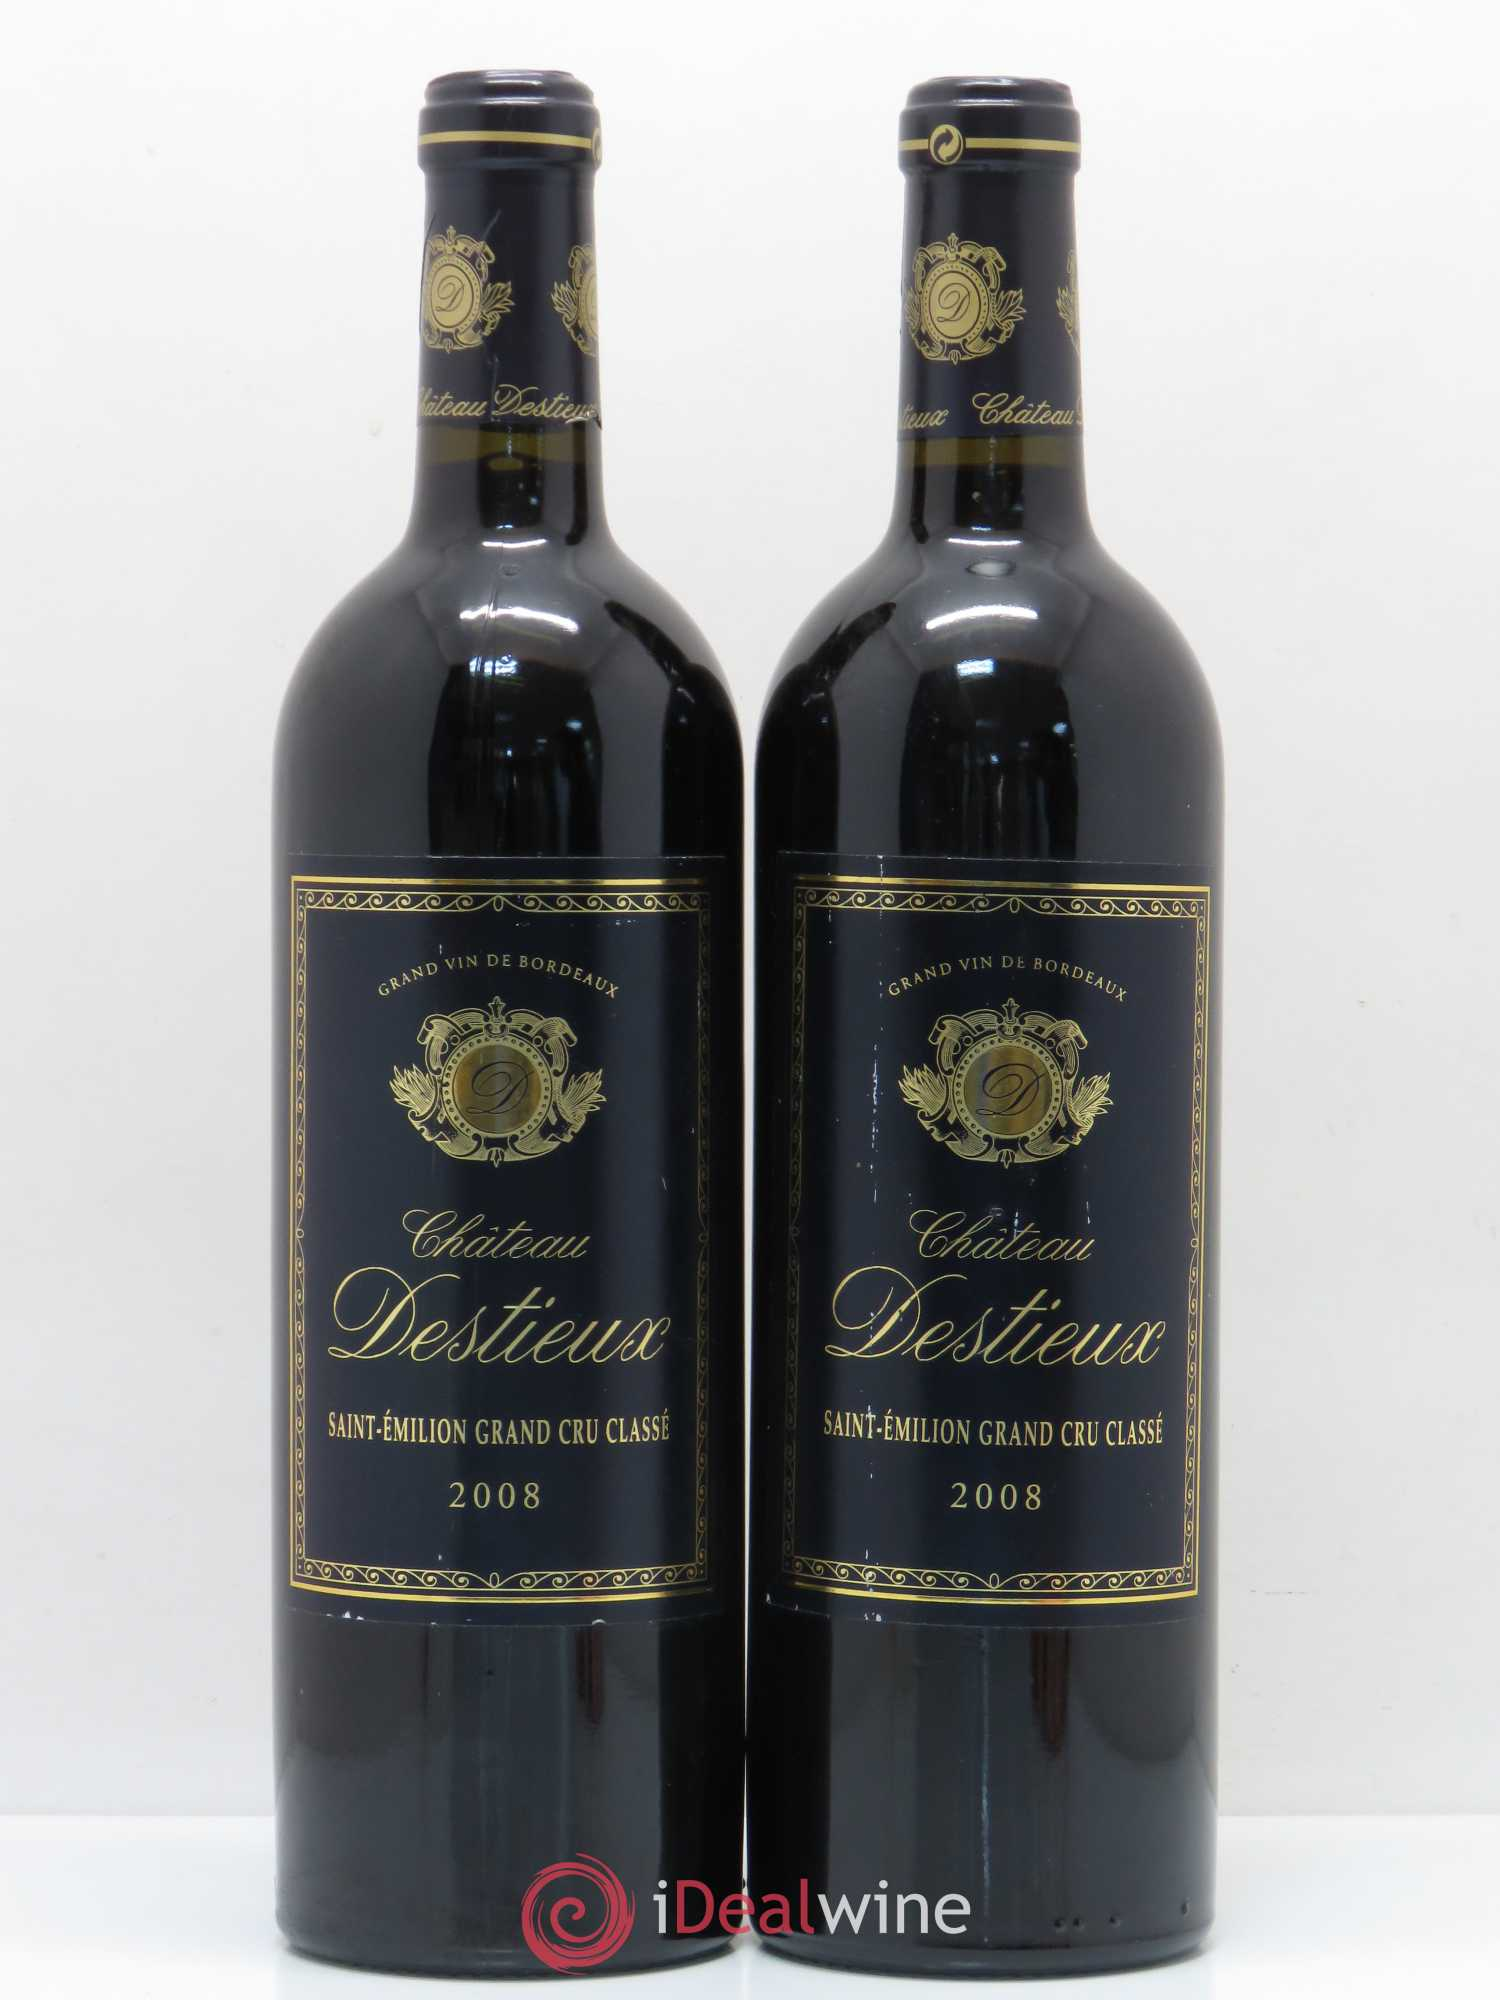 Château Destieux Grand Cru Classé  2008 - Lot of 2 Bottles